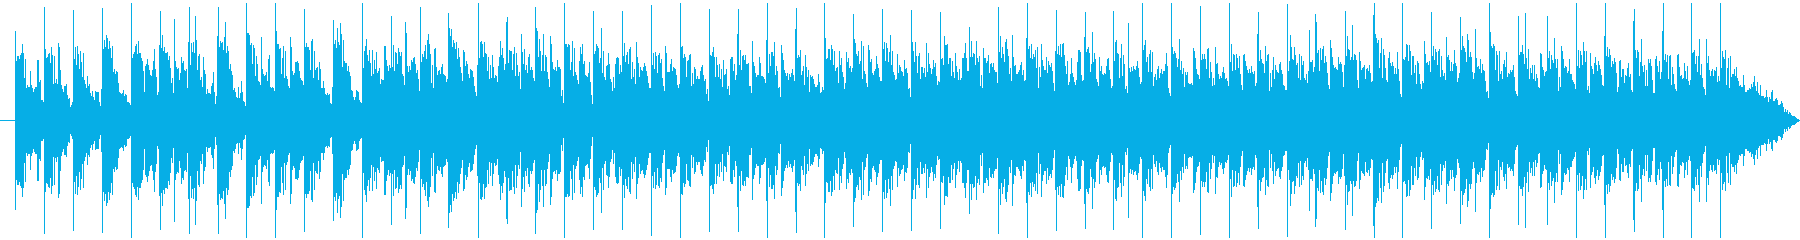 Fresh and funky, ...'s reproduced waveform